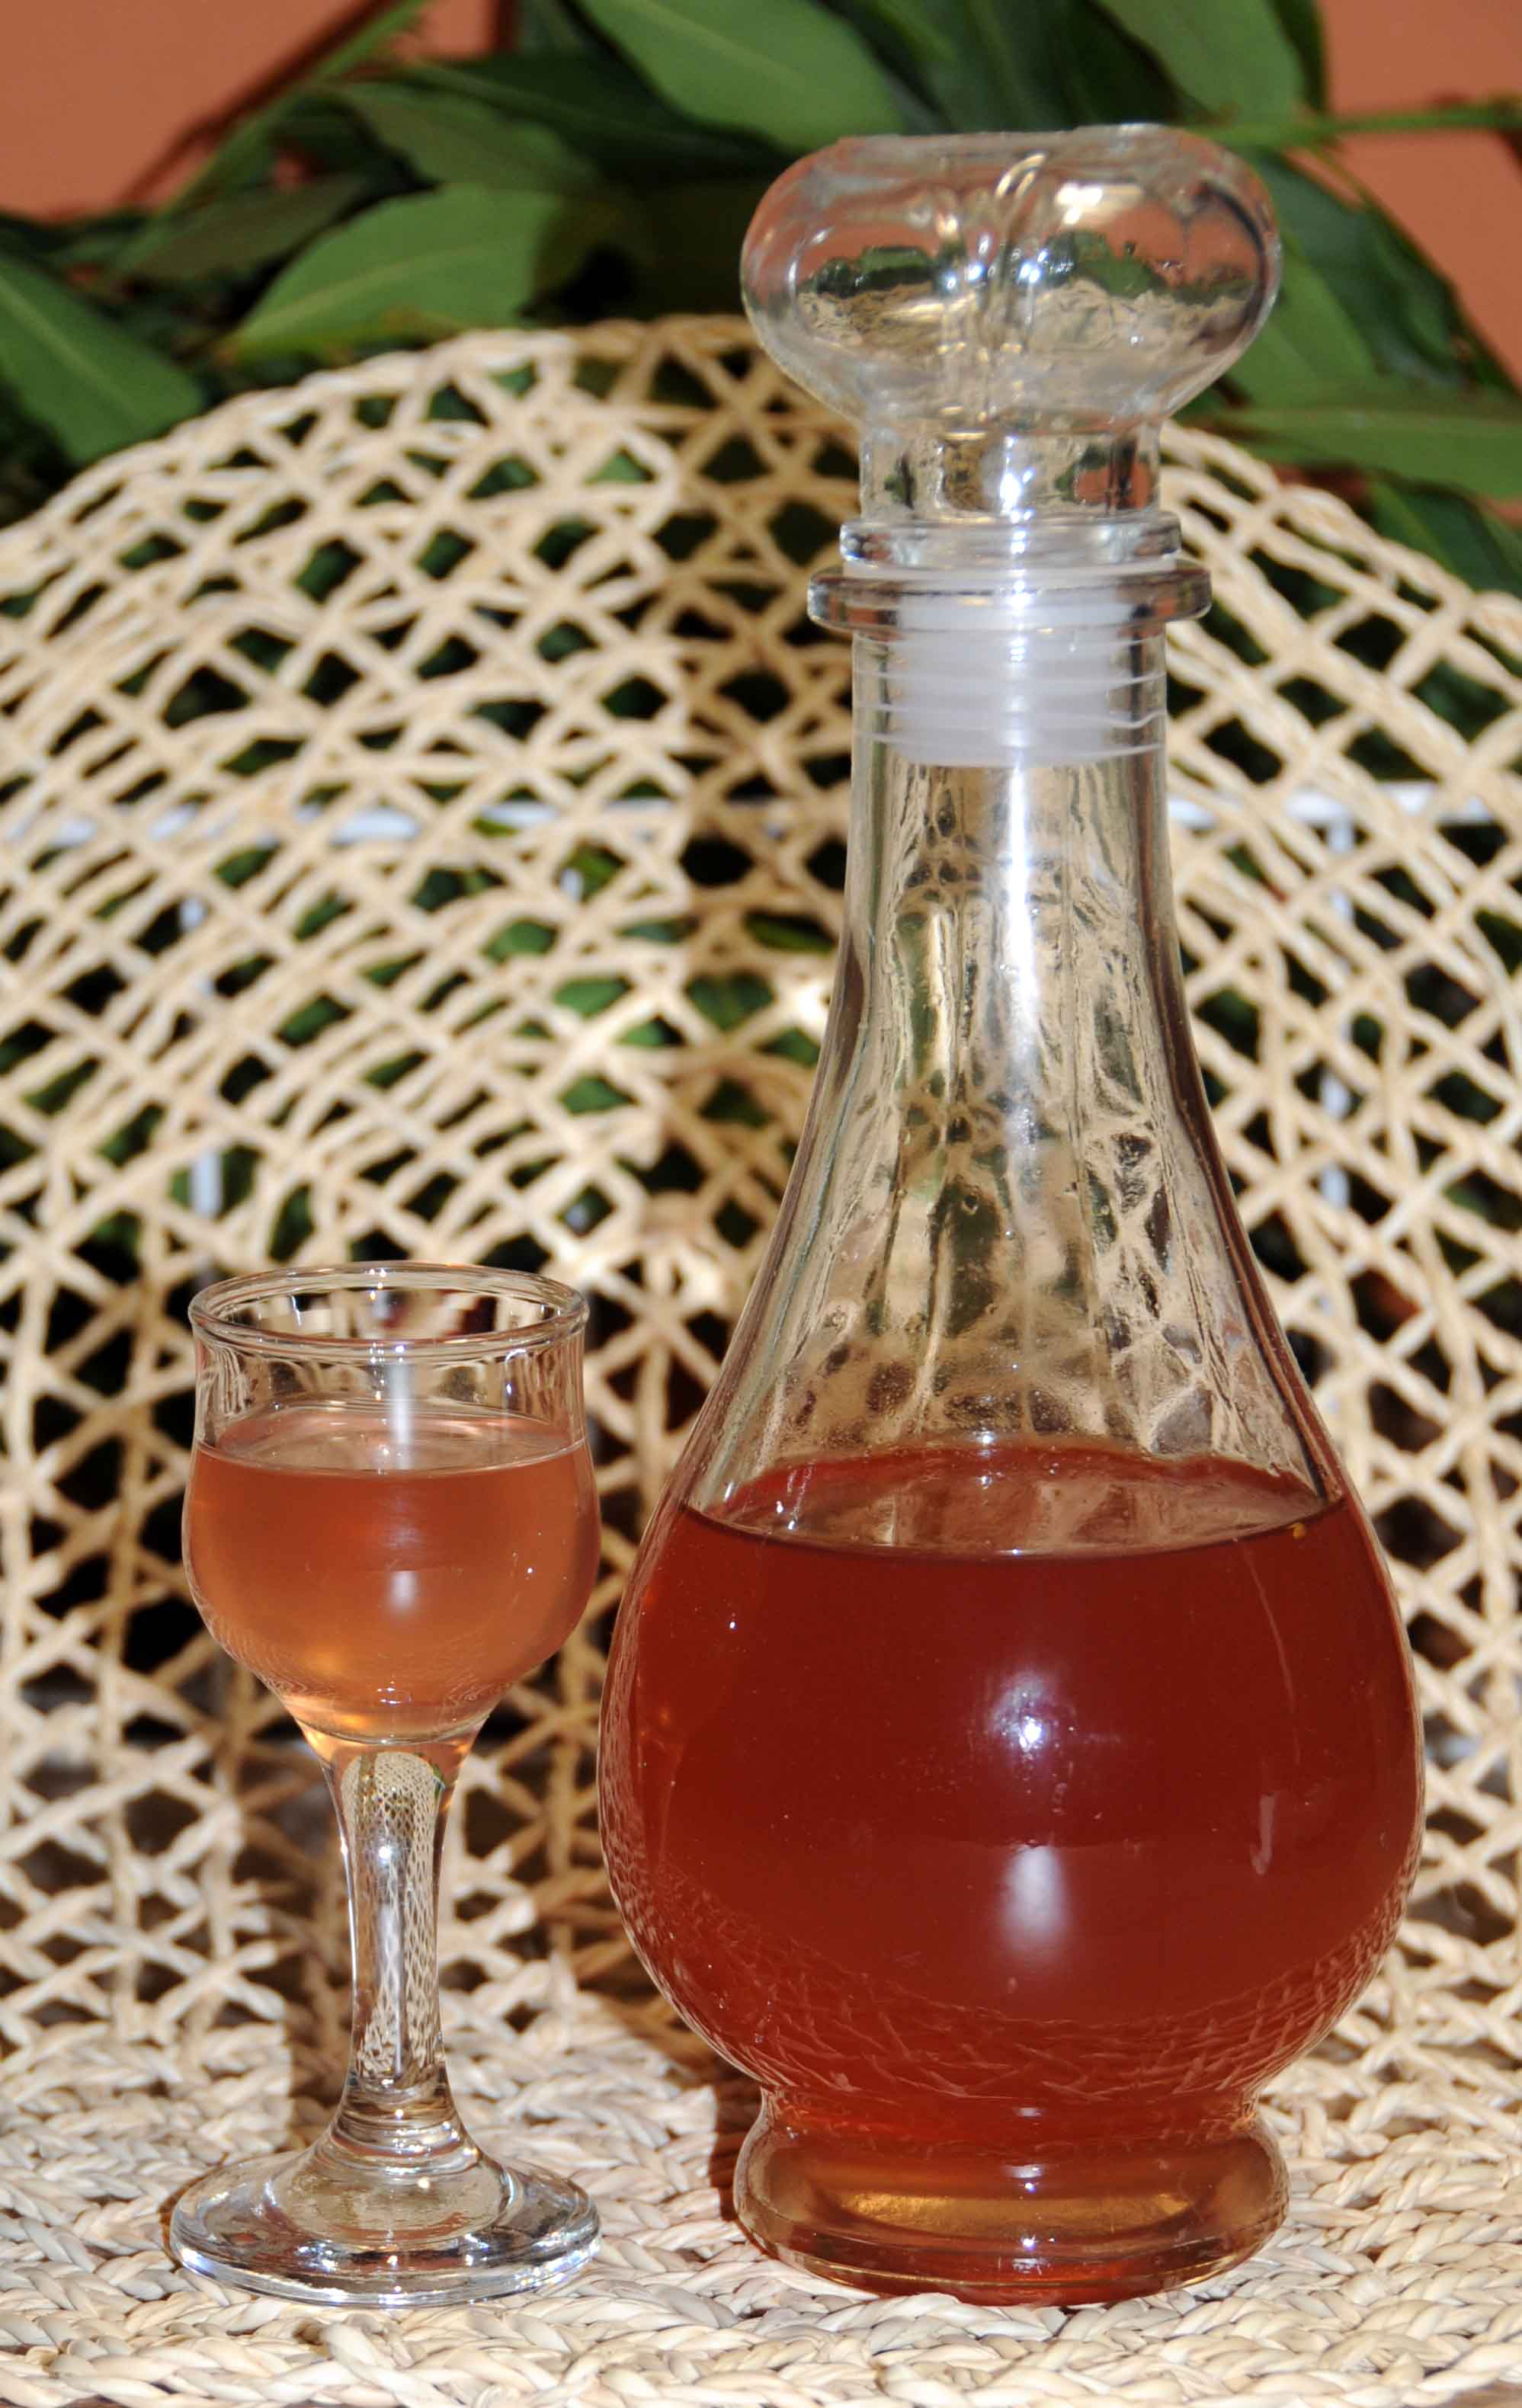 Peach Liqueur - Photo by Thanasis Bounas